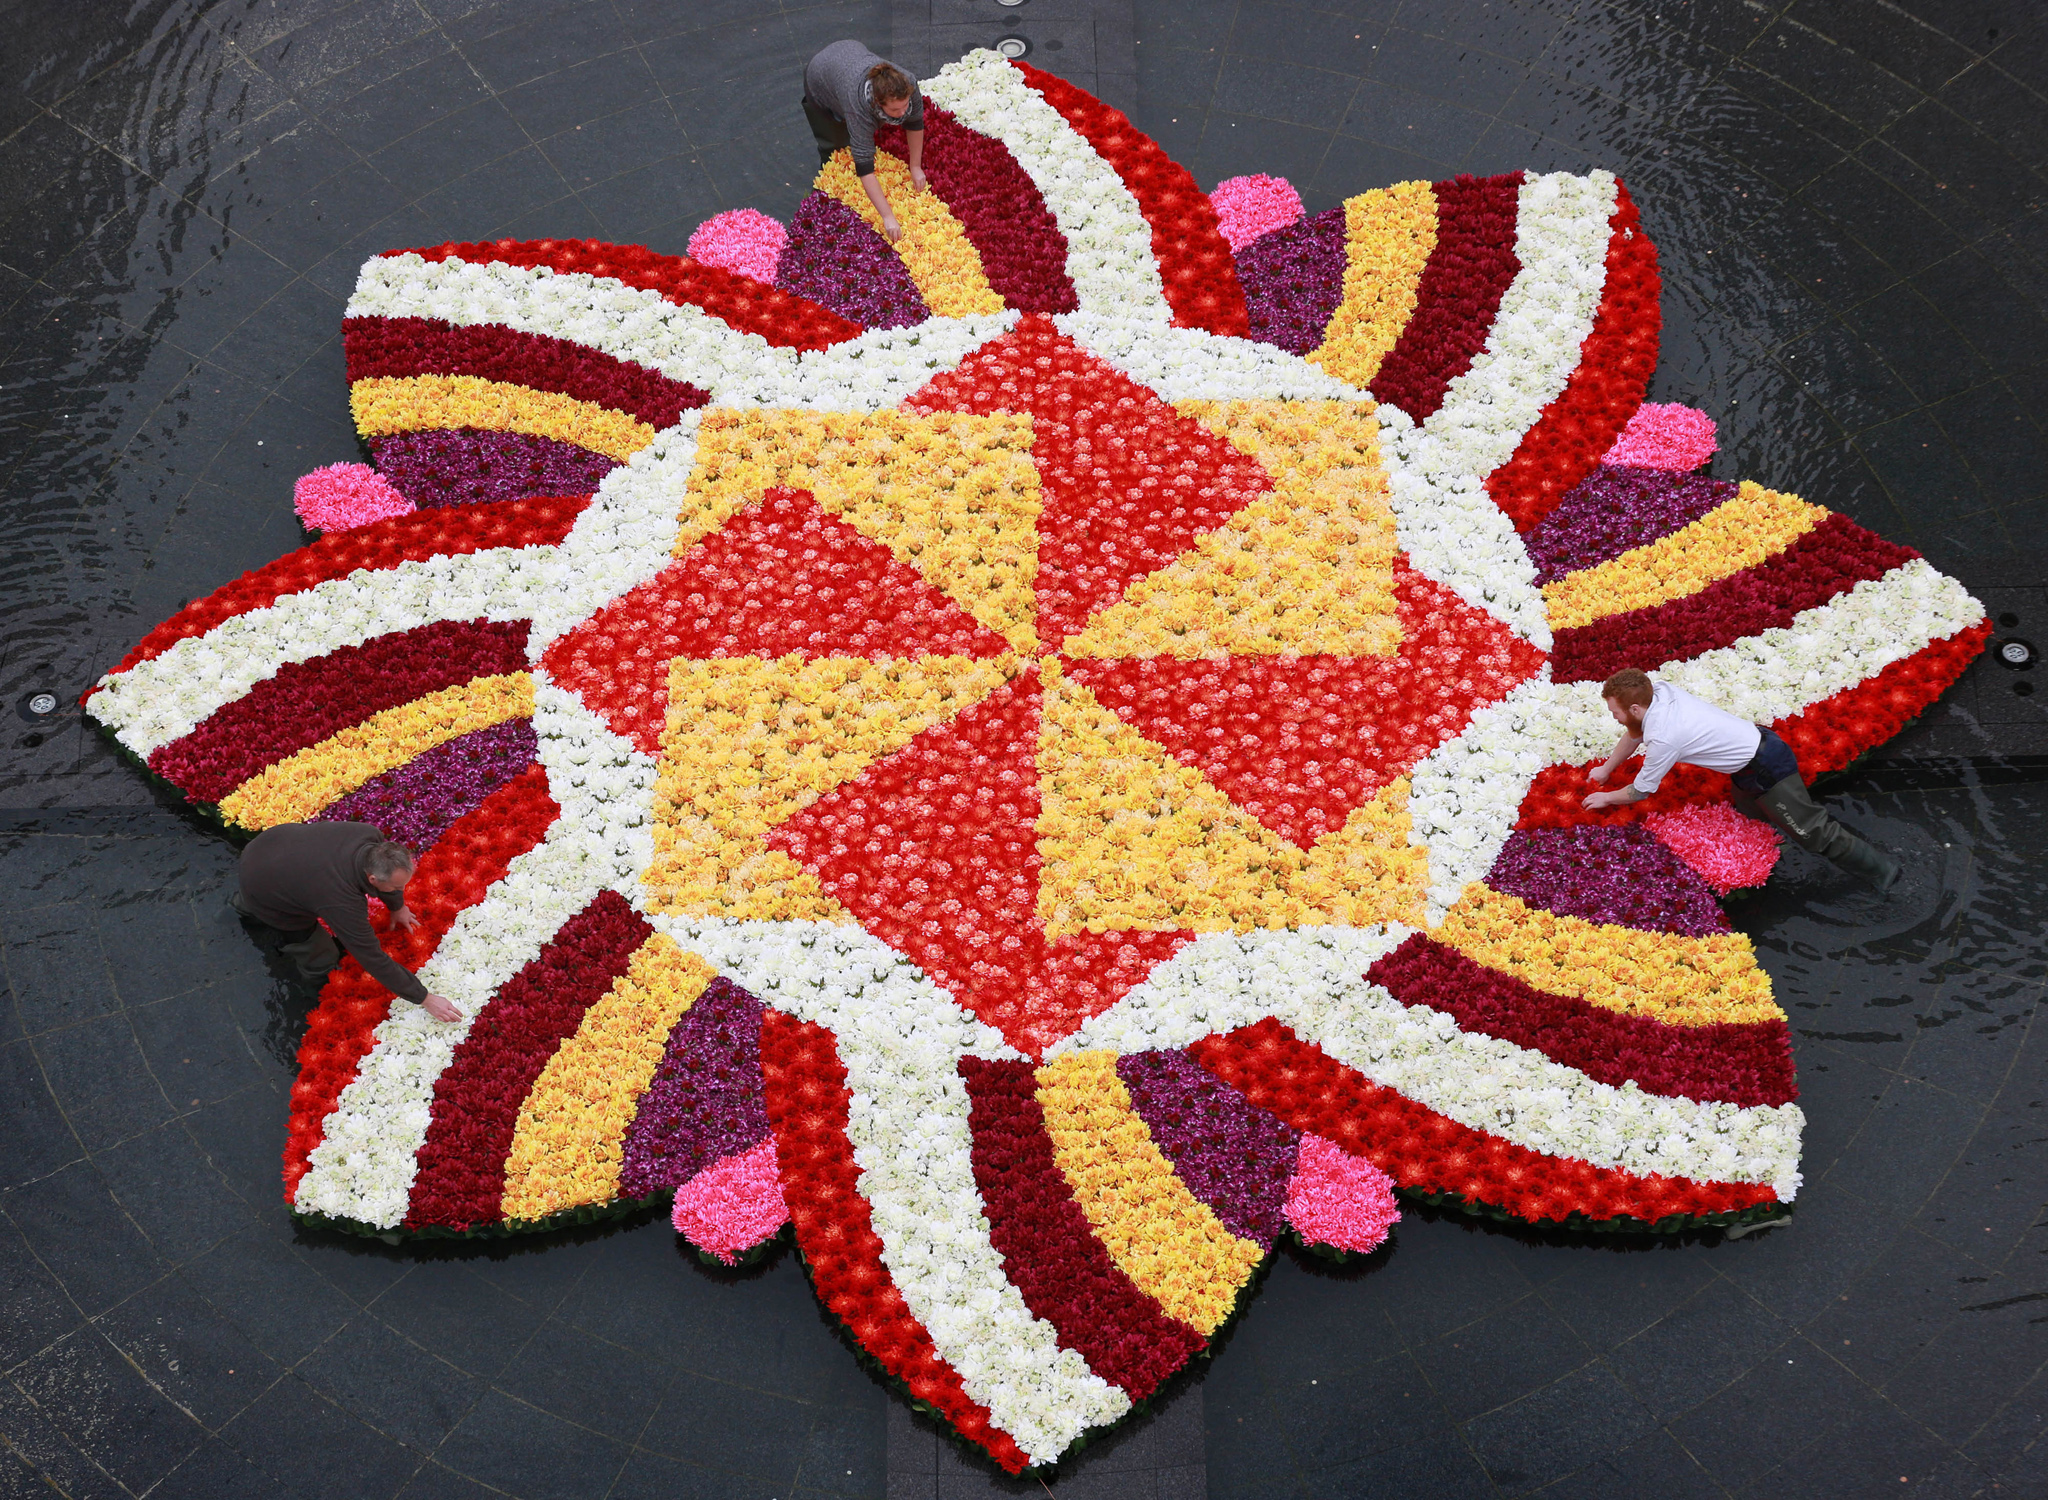 Floral artists (left-right) Richard Bragg, Harriet Sargent and James Buswell put the finishing touches to a 9x9m rangoli-style flower installation in the fountain at Cabot Square, Canary Wharf, London, made with over 6,000 flowers to celebrate Diwali, the Festival of Light.